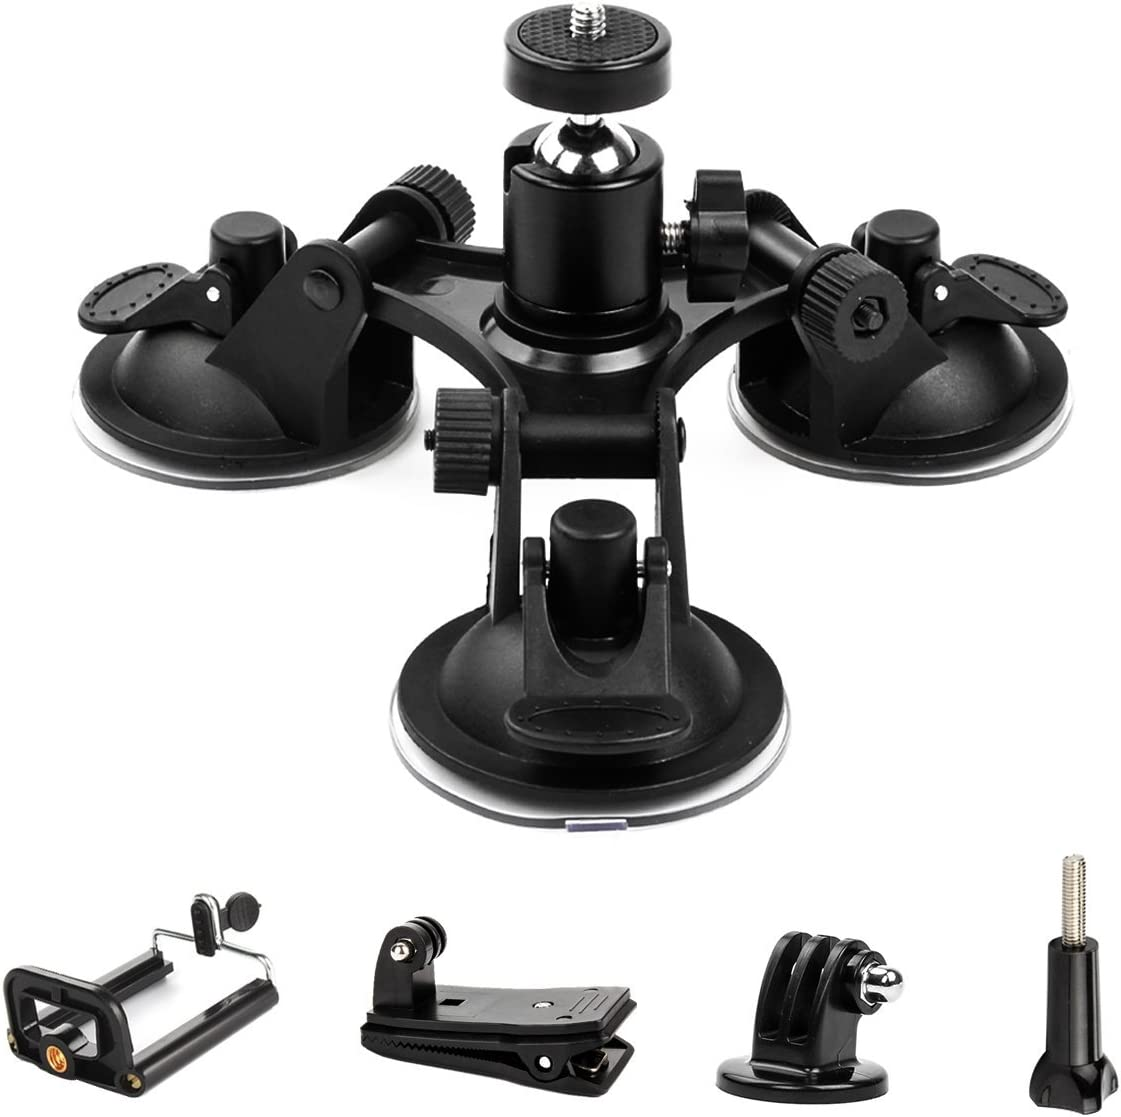 Triple Cup - Camera Suction Mount - Car Mount Triple Suction Cup Mount with 1/4 Threaded Head 360 Degree Tripod Ball Head